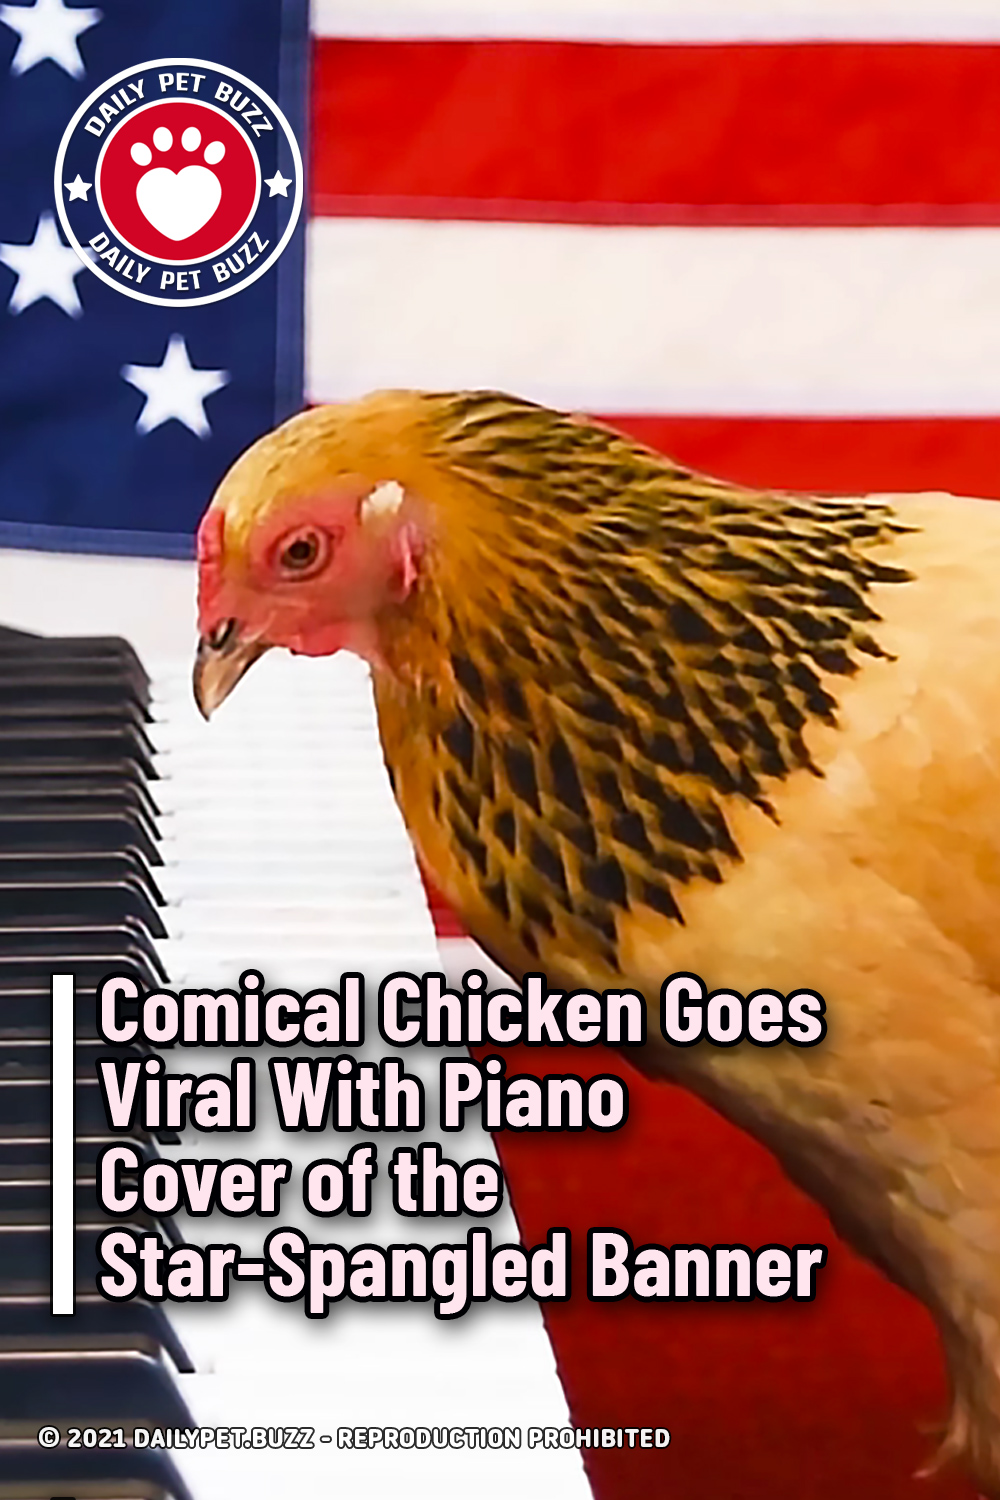 Comical Chicken Goes Viral With Piano Cover of the Star-Spangled Banner